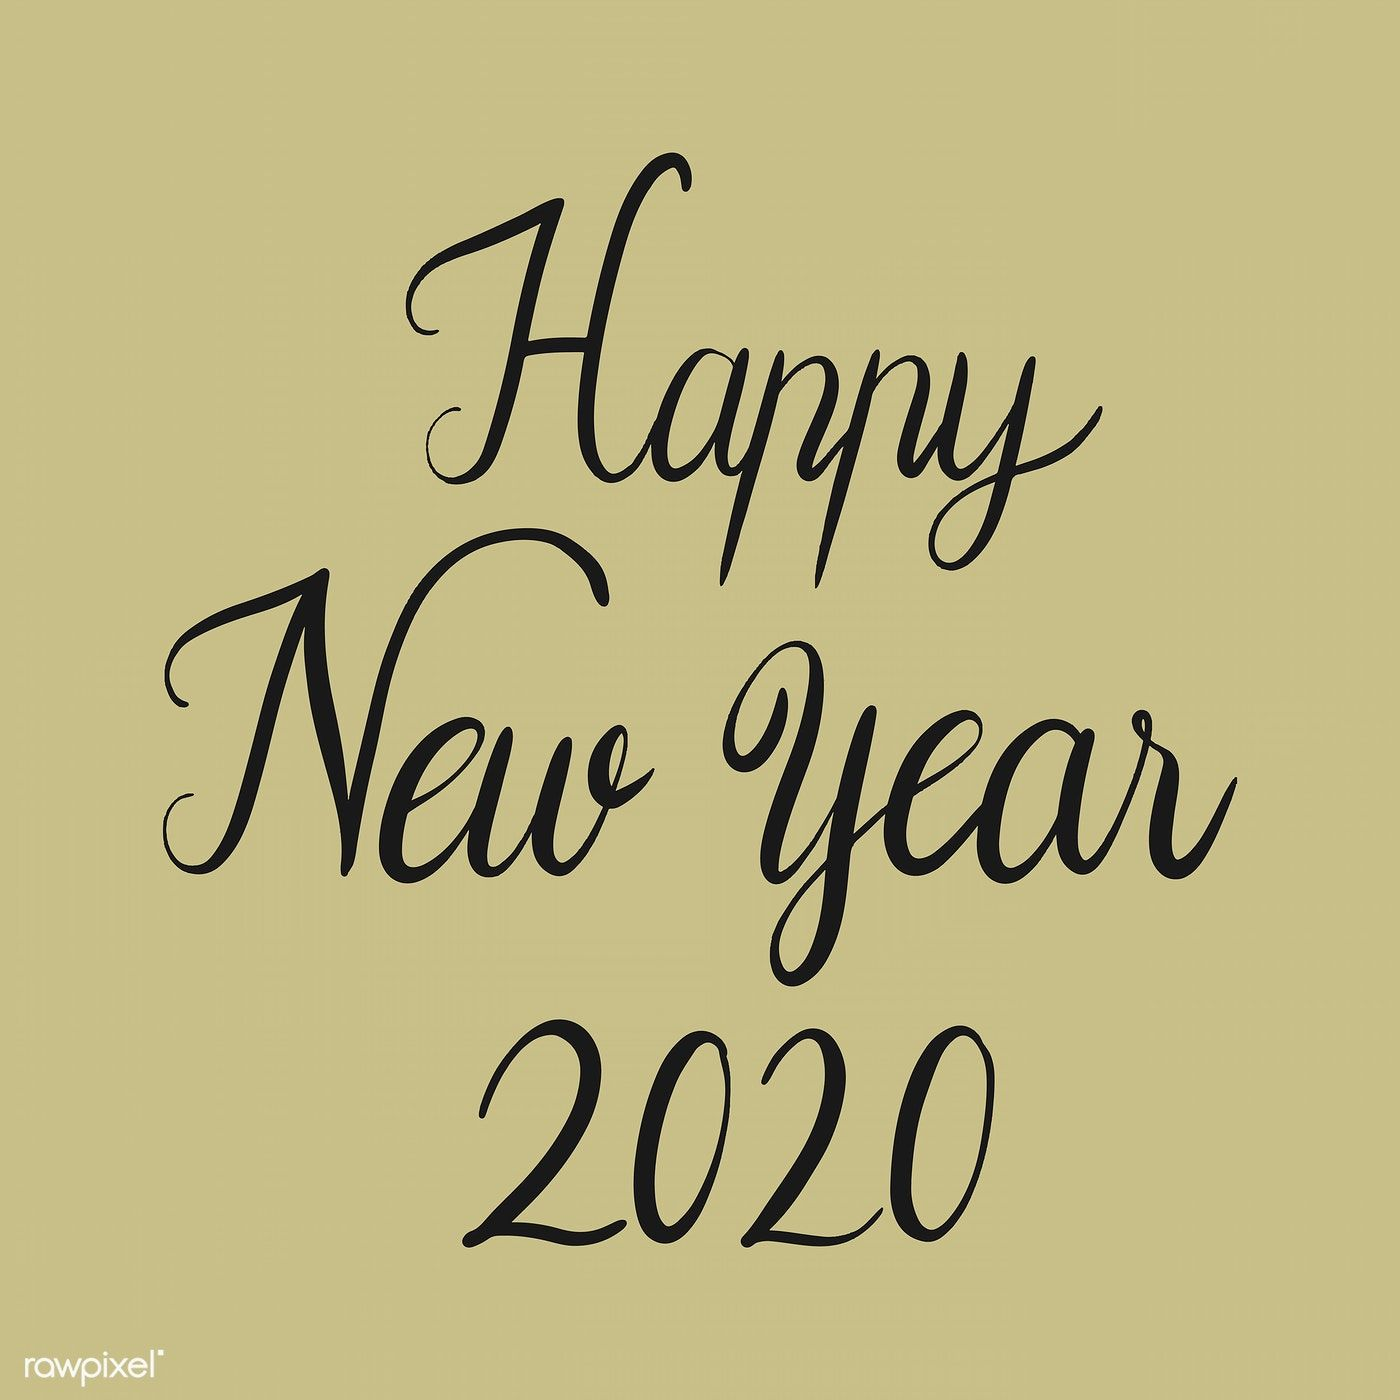 Happy New Year 2020 Typography Design Vector Premium Image By Rawpixel Com Noon In 2020 Happy New Year Greetings Happy New Year Typography Happy New Year Cards